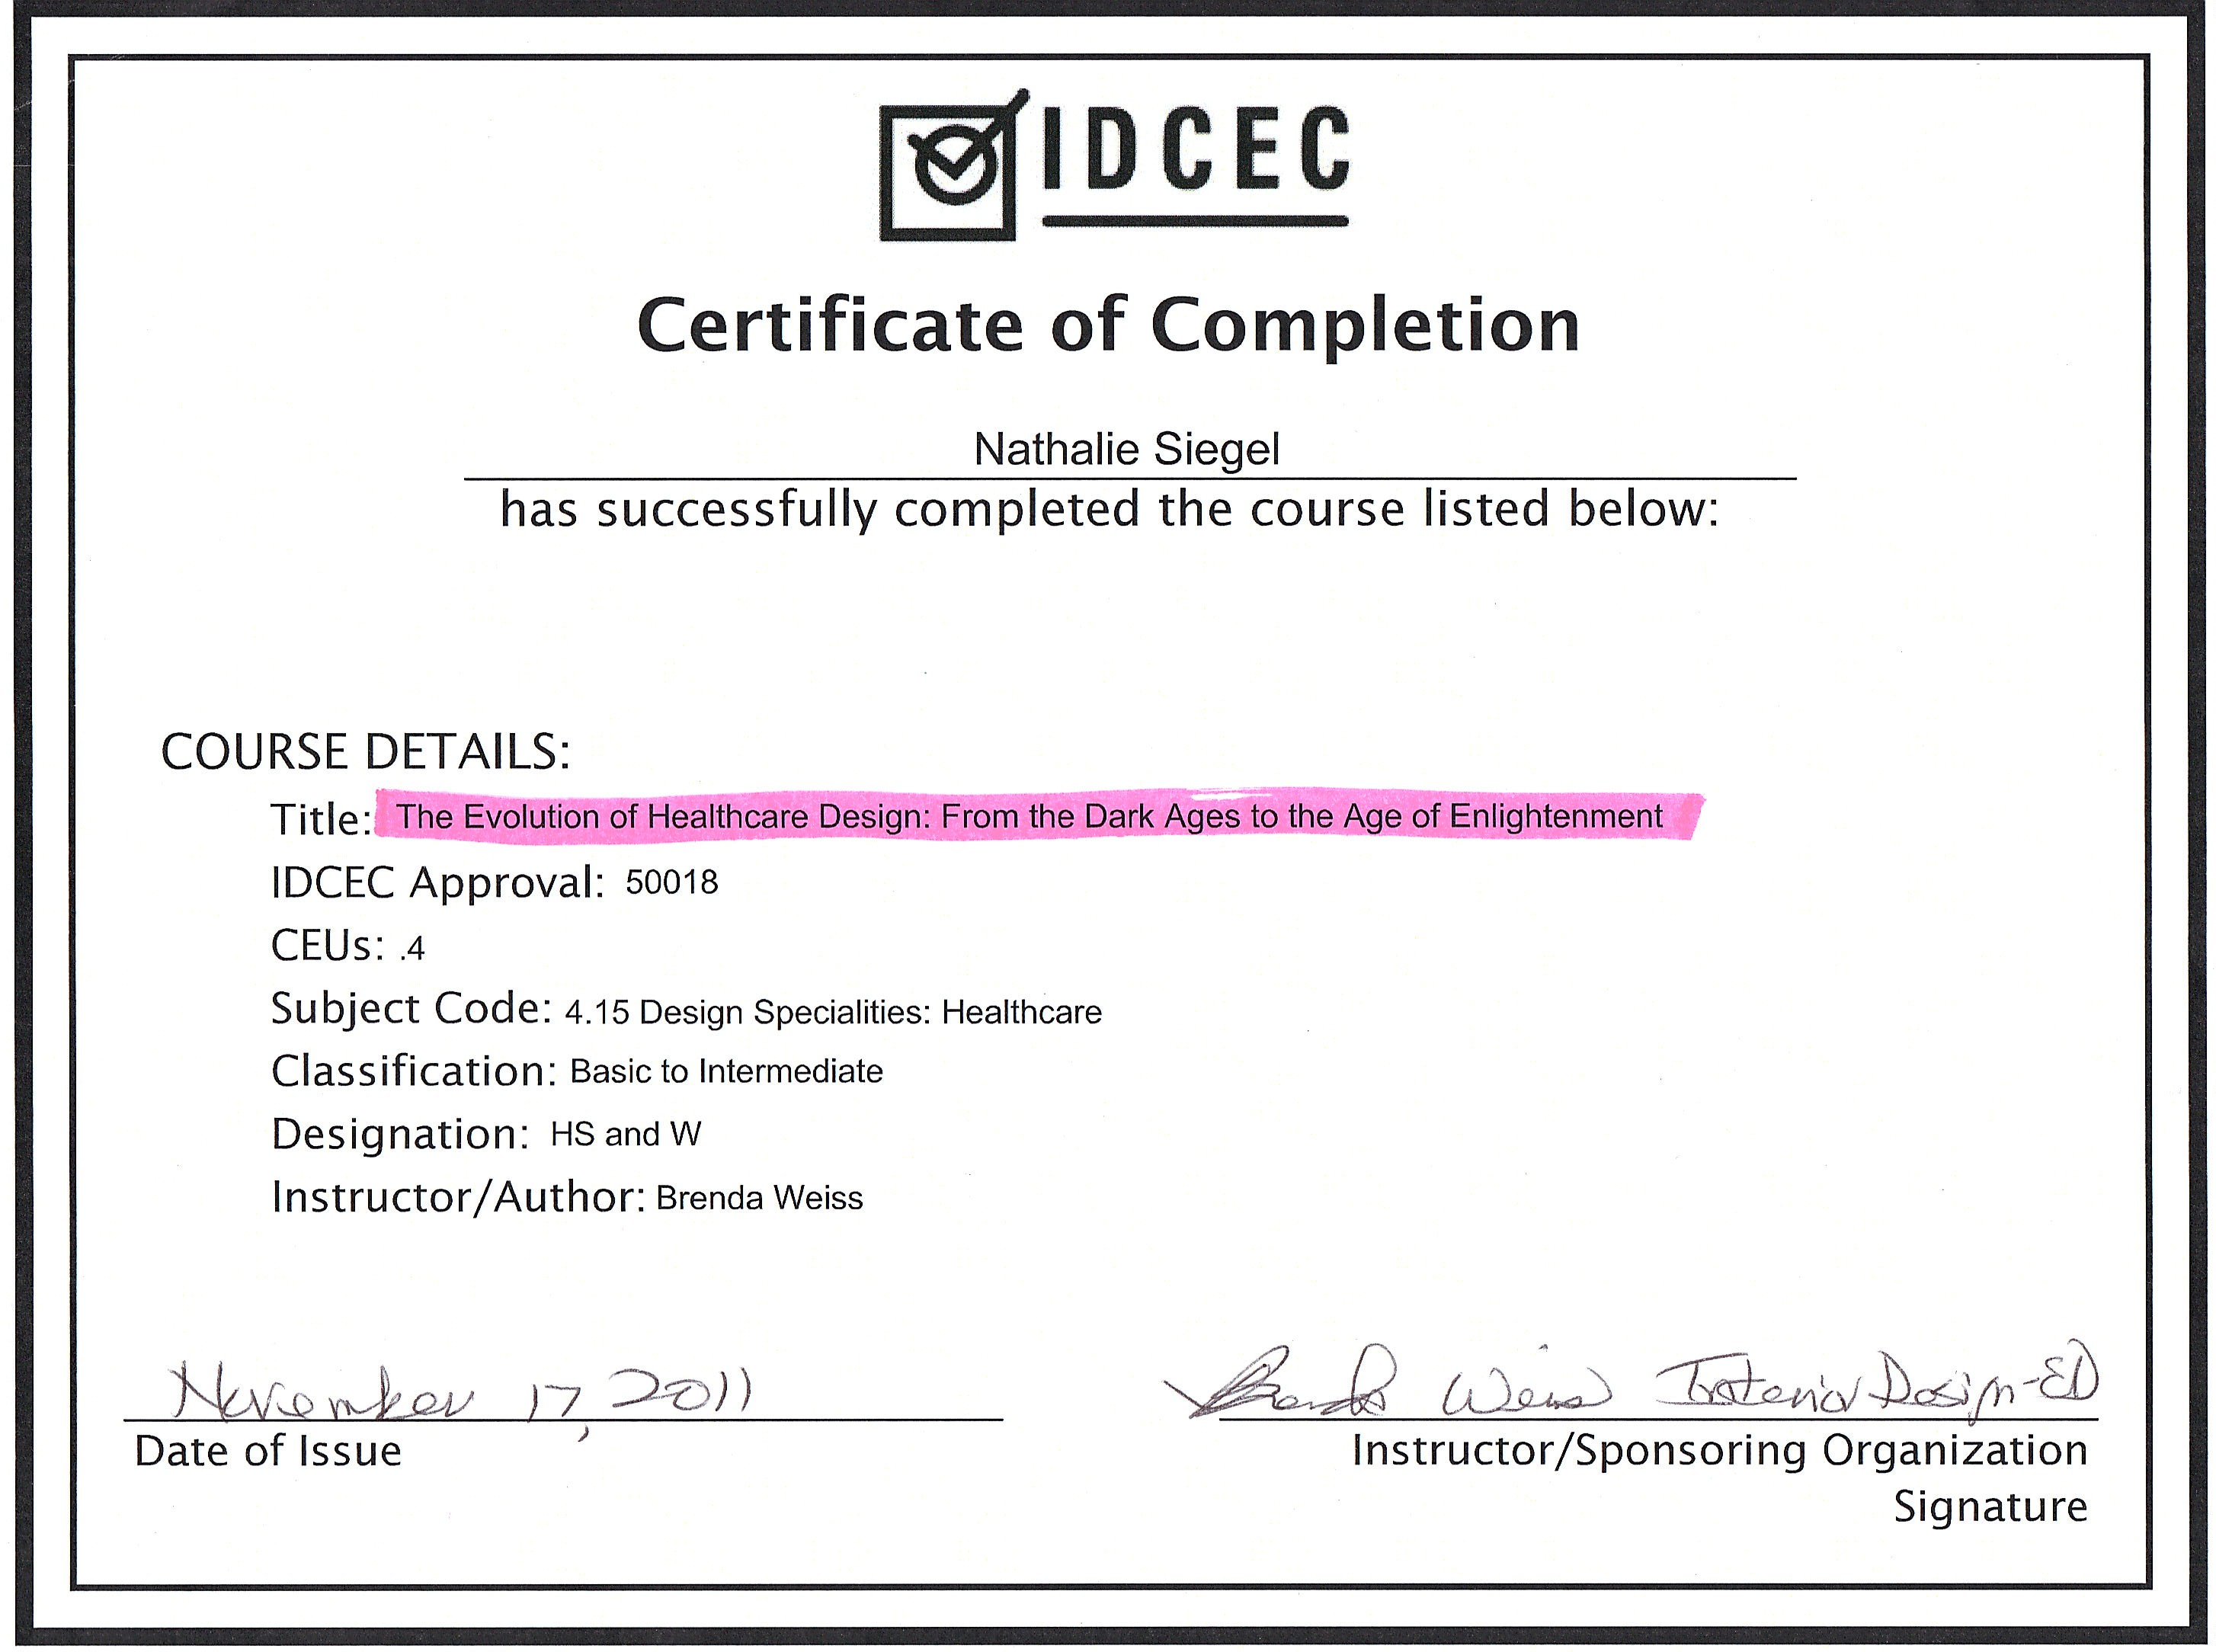 4 Hour Course For Healthcare CEUs In AIA NCIDQ Sponsored By IDCEC Interior Design Continuing Education Council